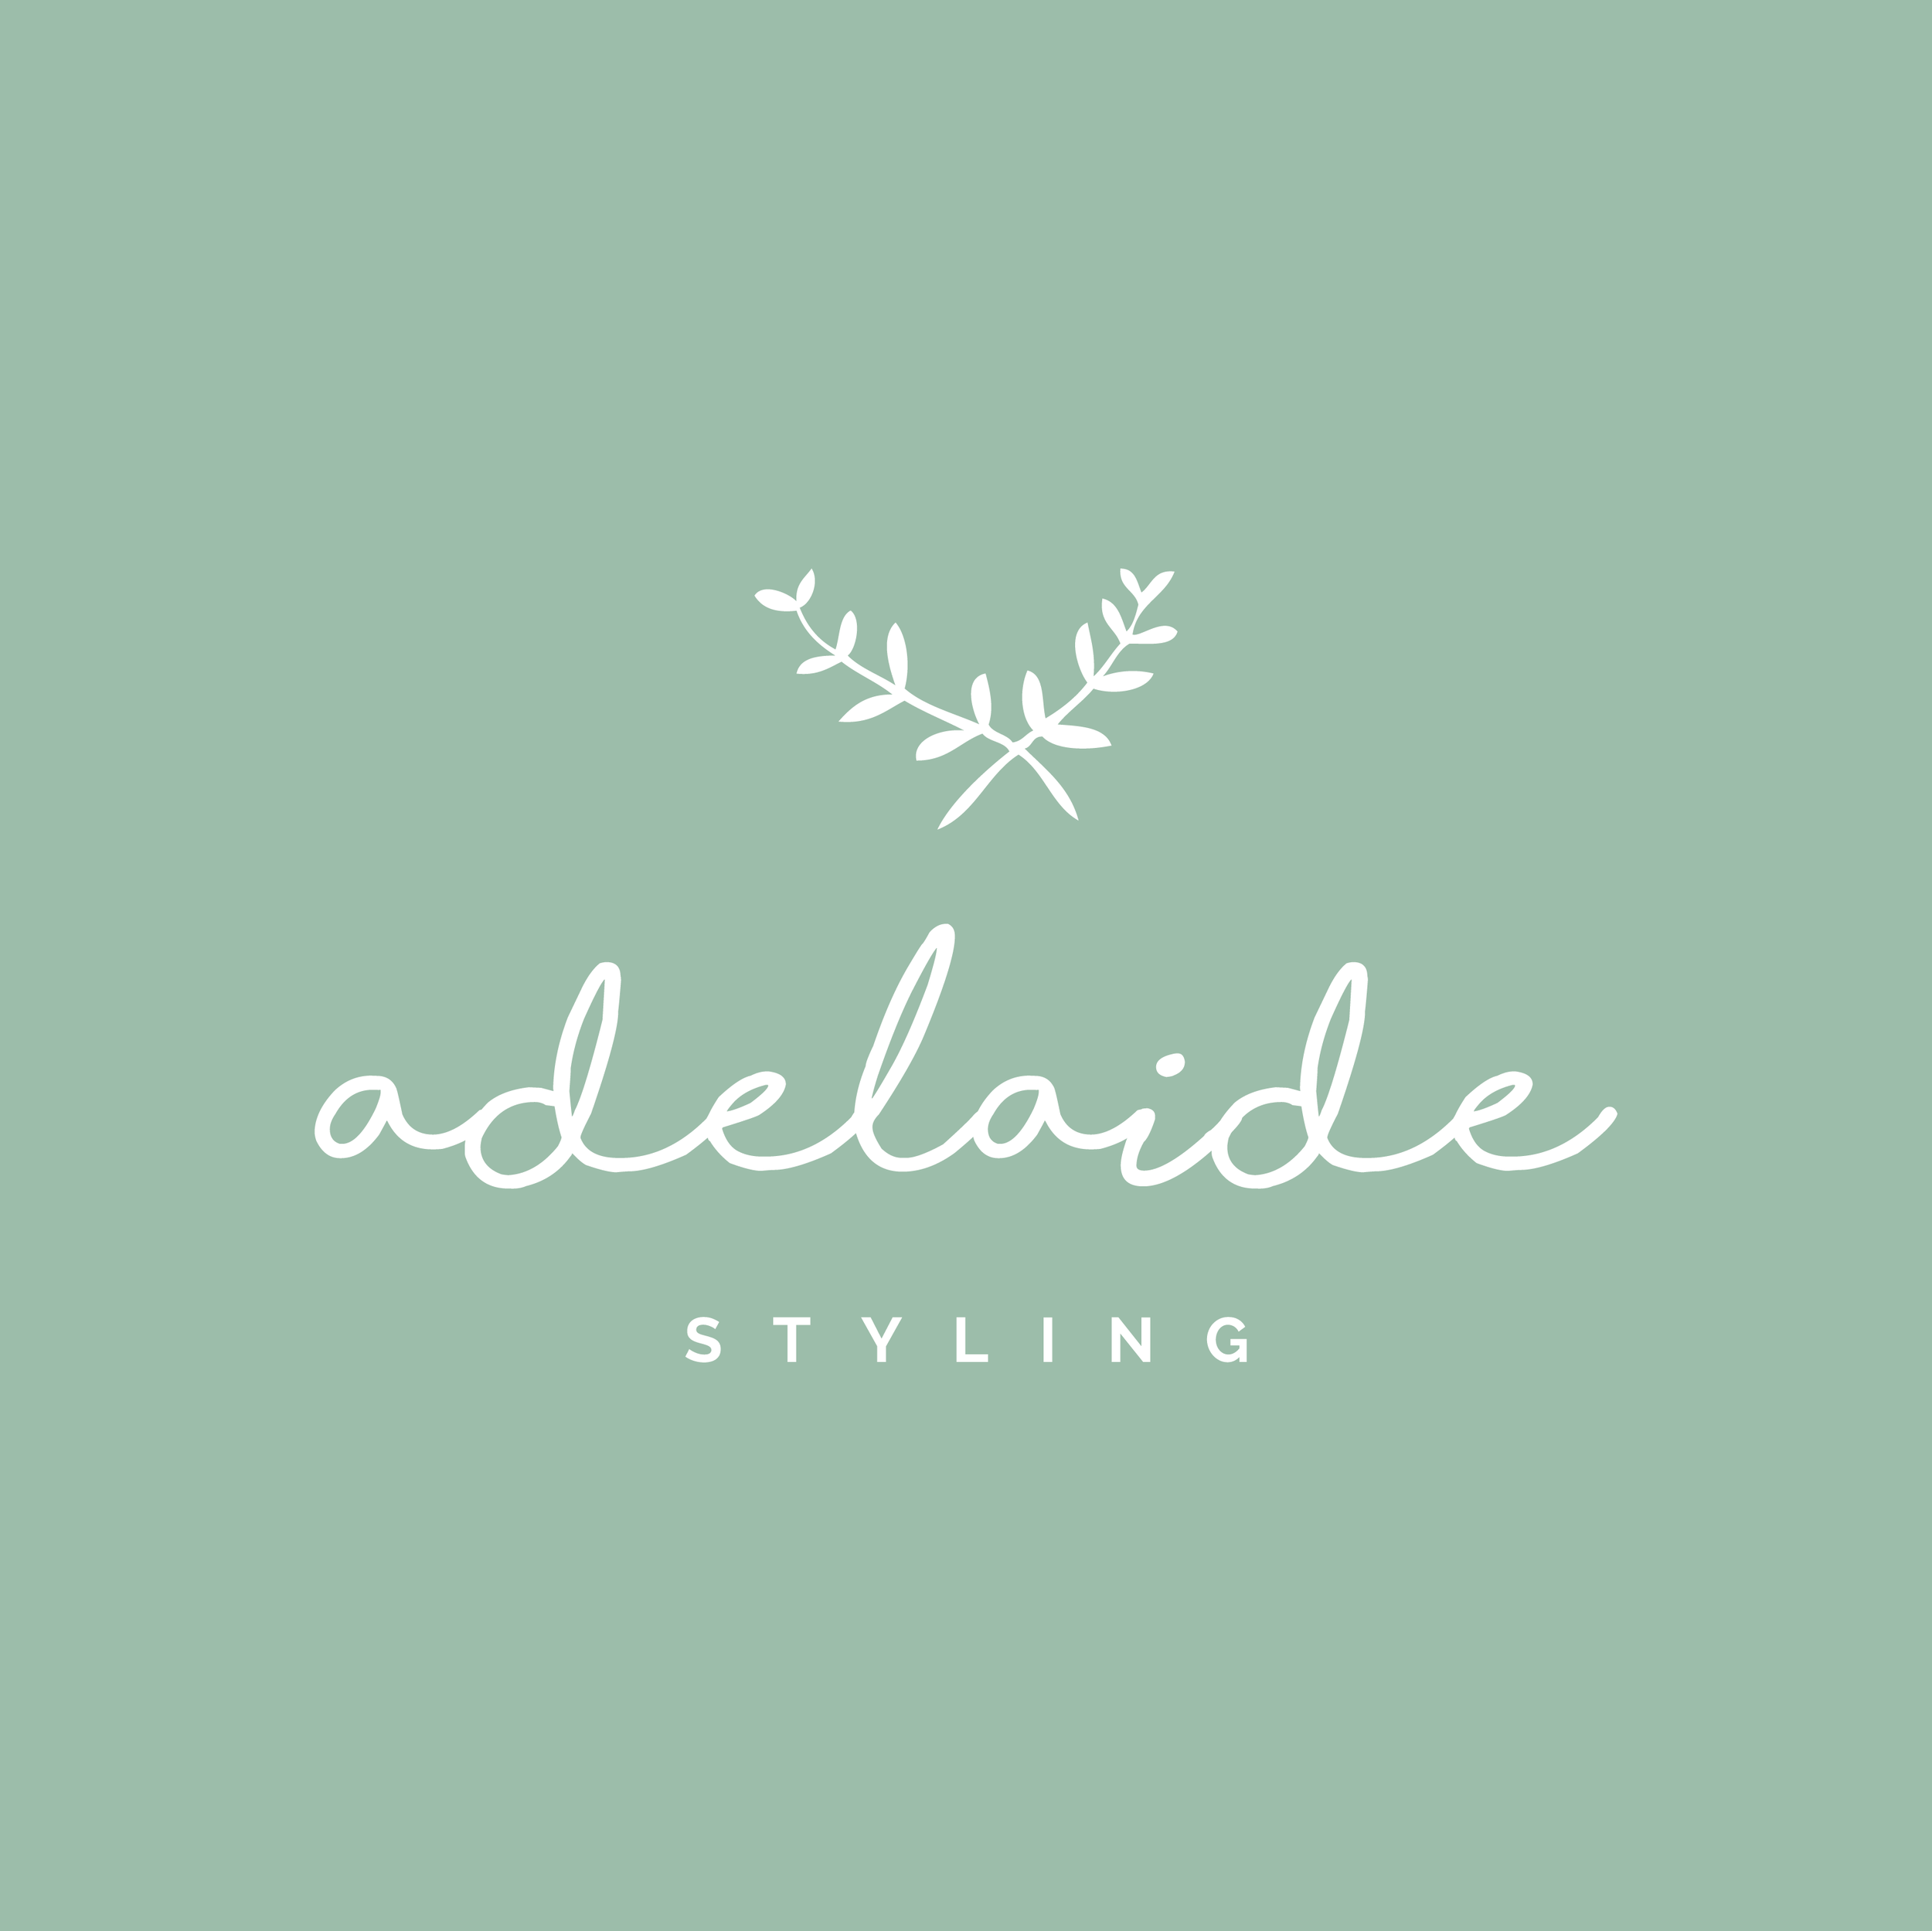 A  delaide Styling    brand // print